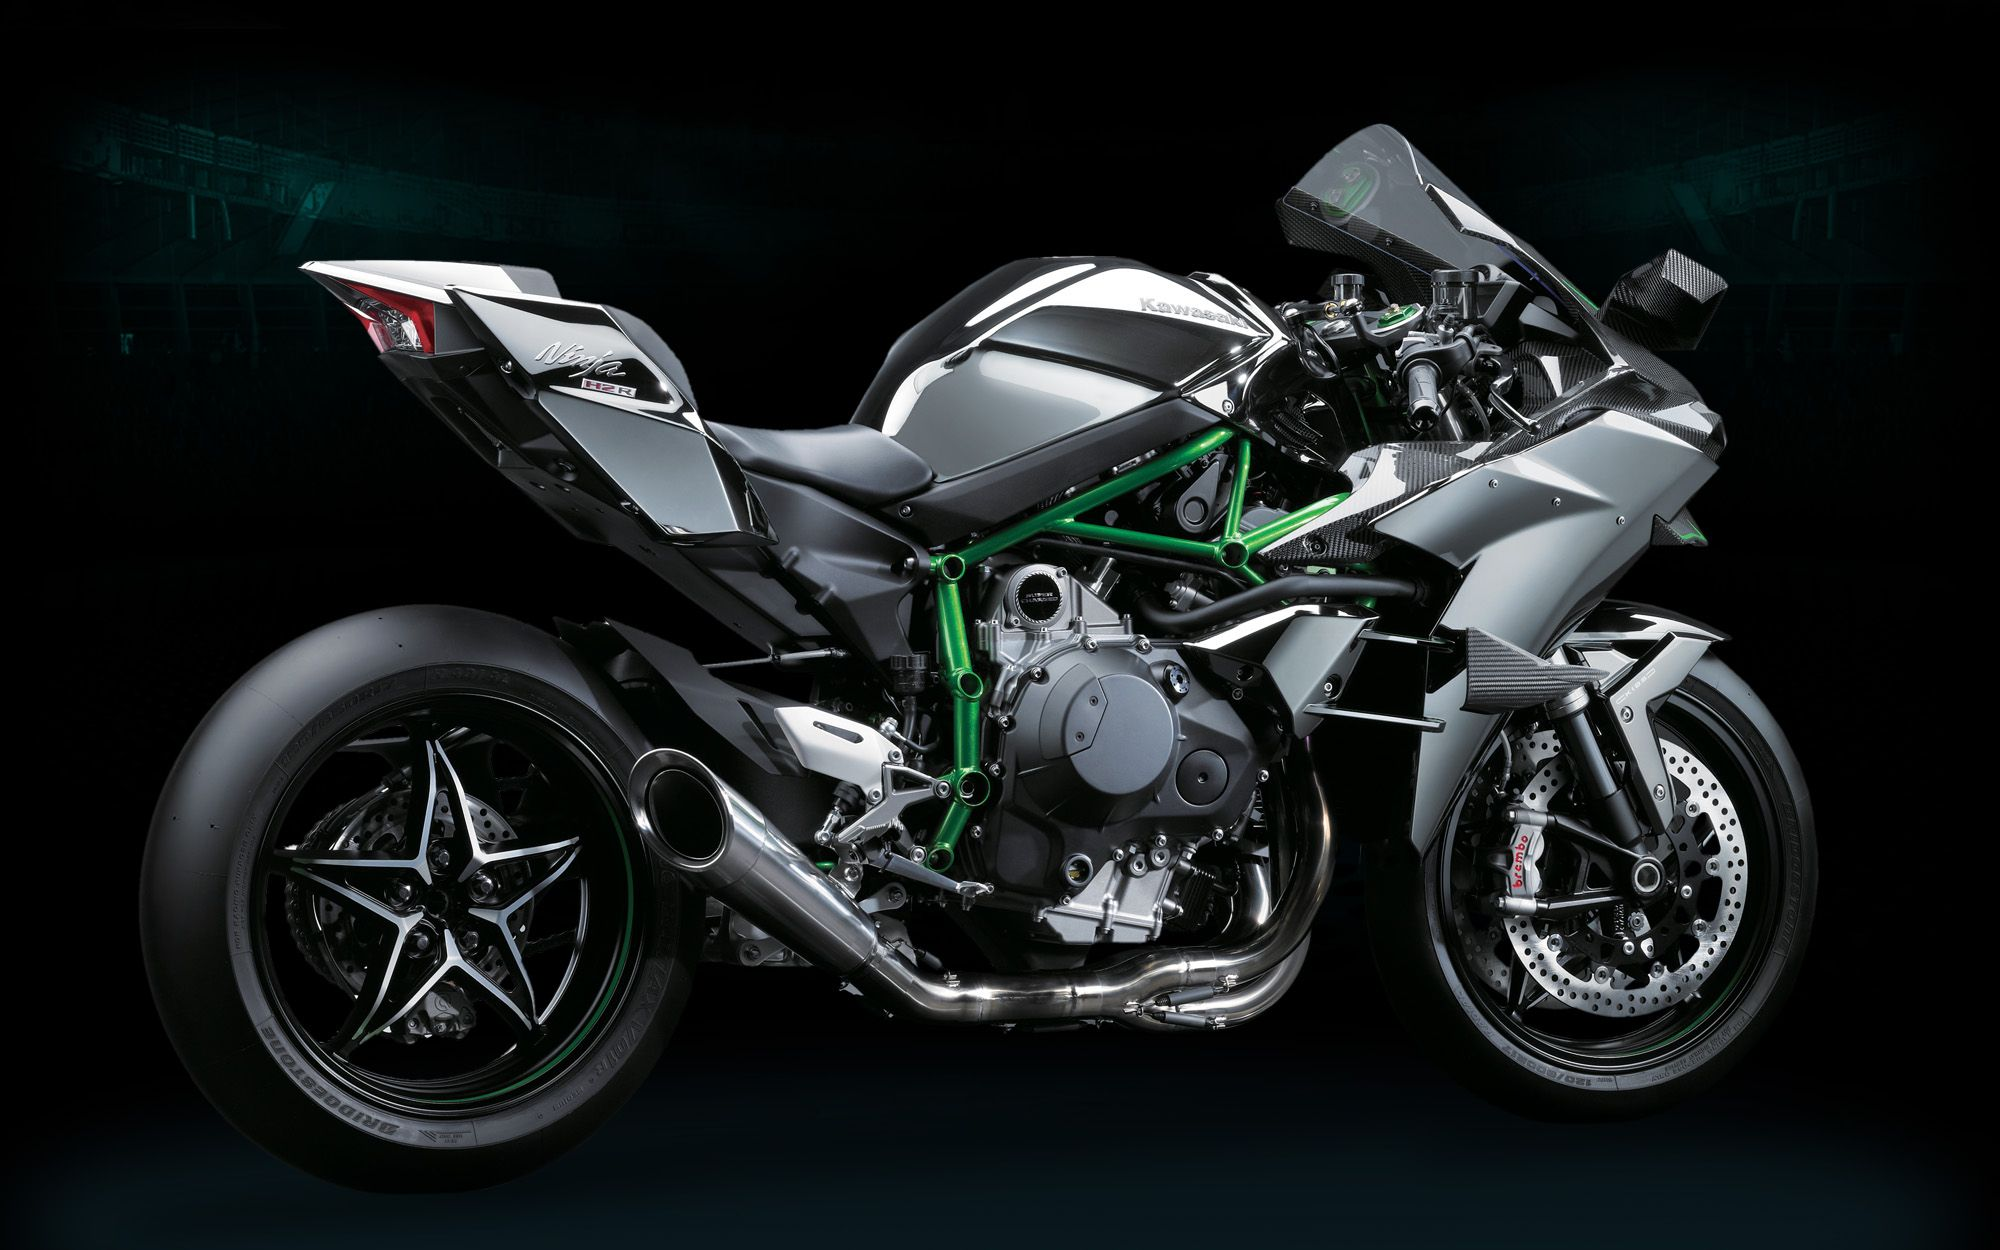 The Ninja H2R Wallpapers